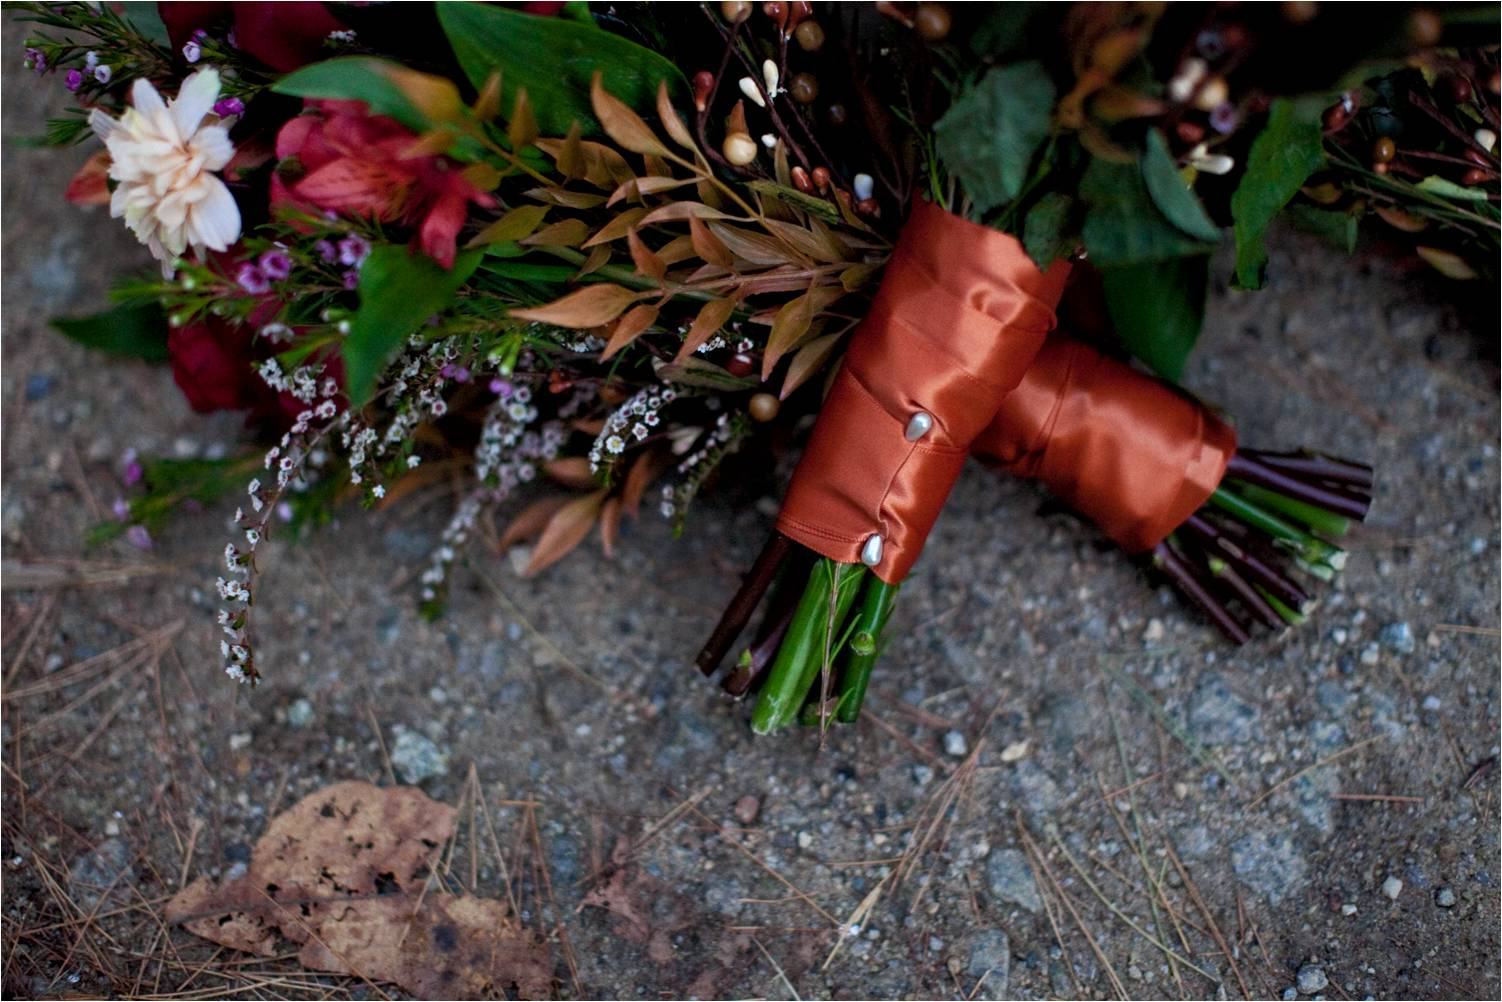 Outdoor-real-wedding-fall-rustic-new-hampshire-bridal-bouquets-bridesmaids-flowers.original